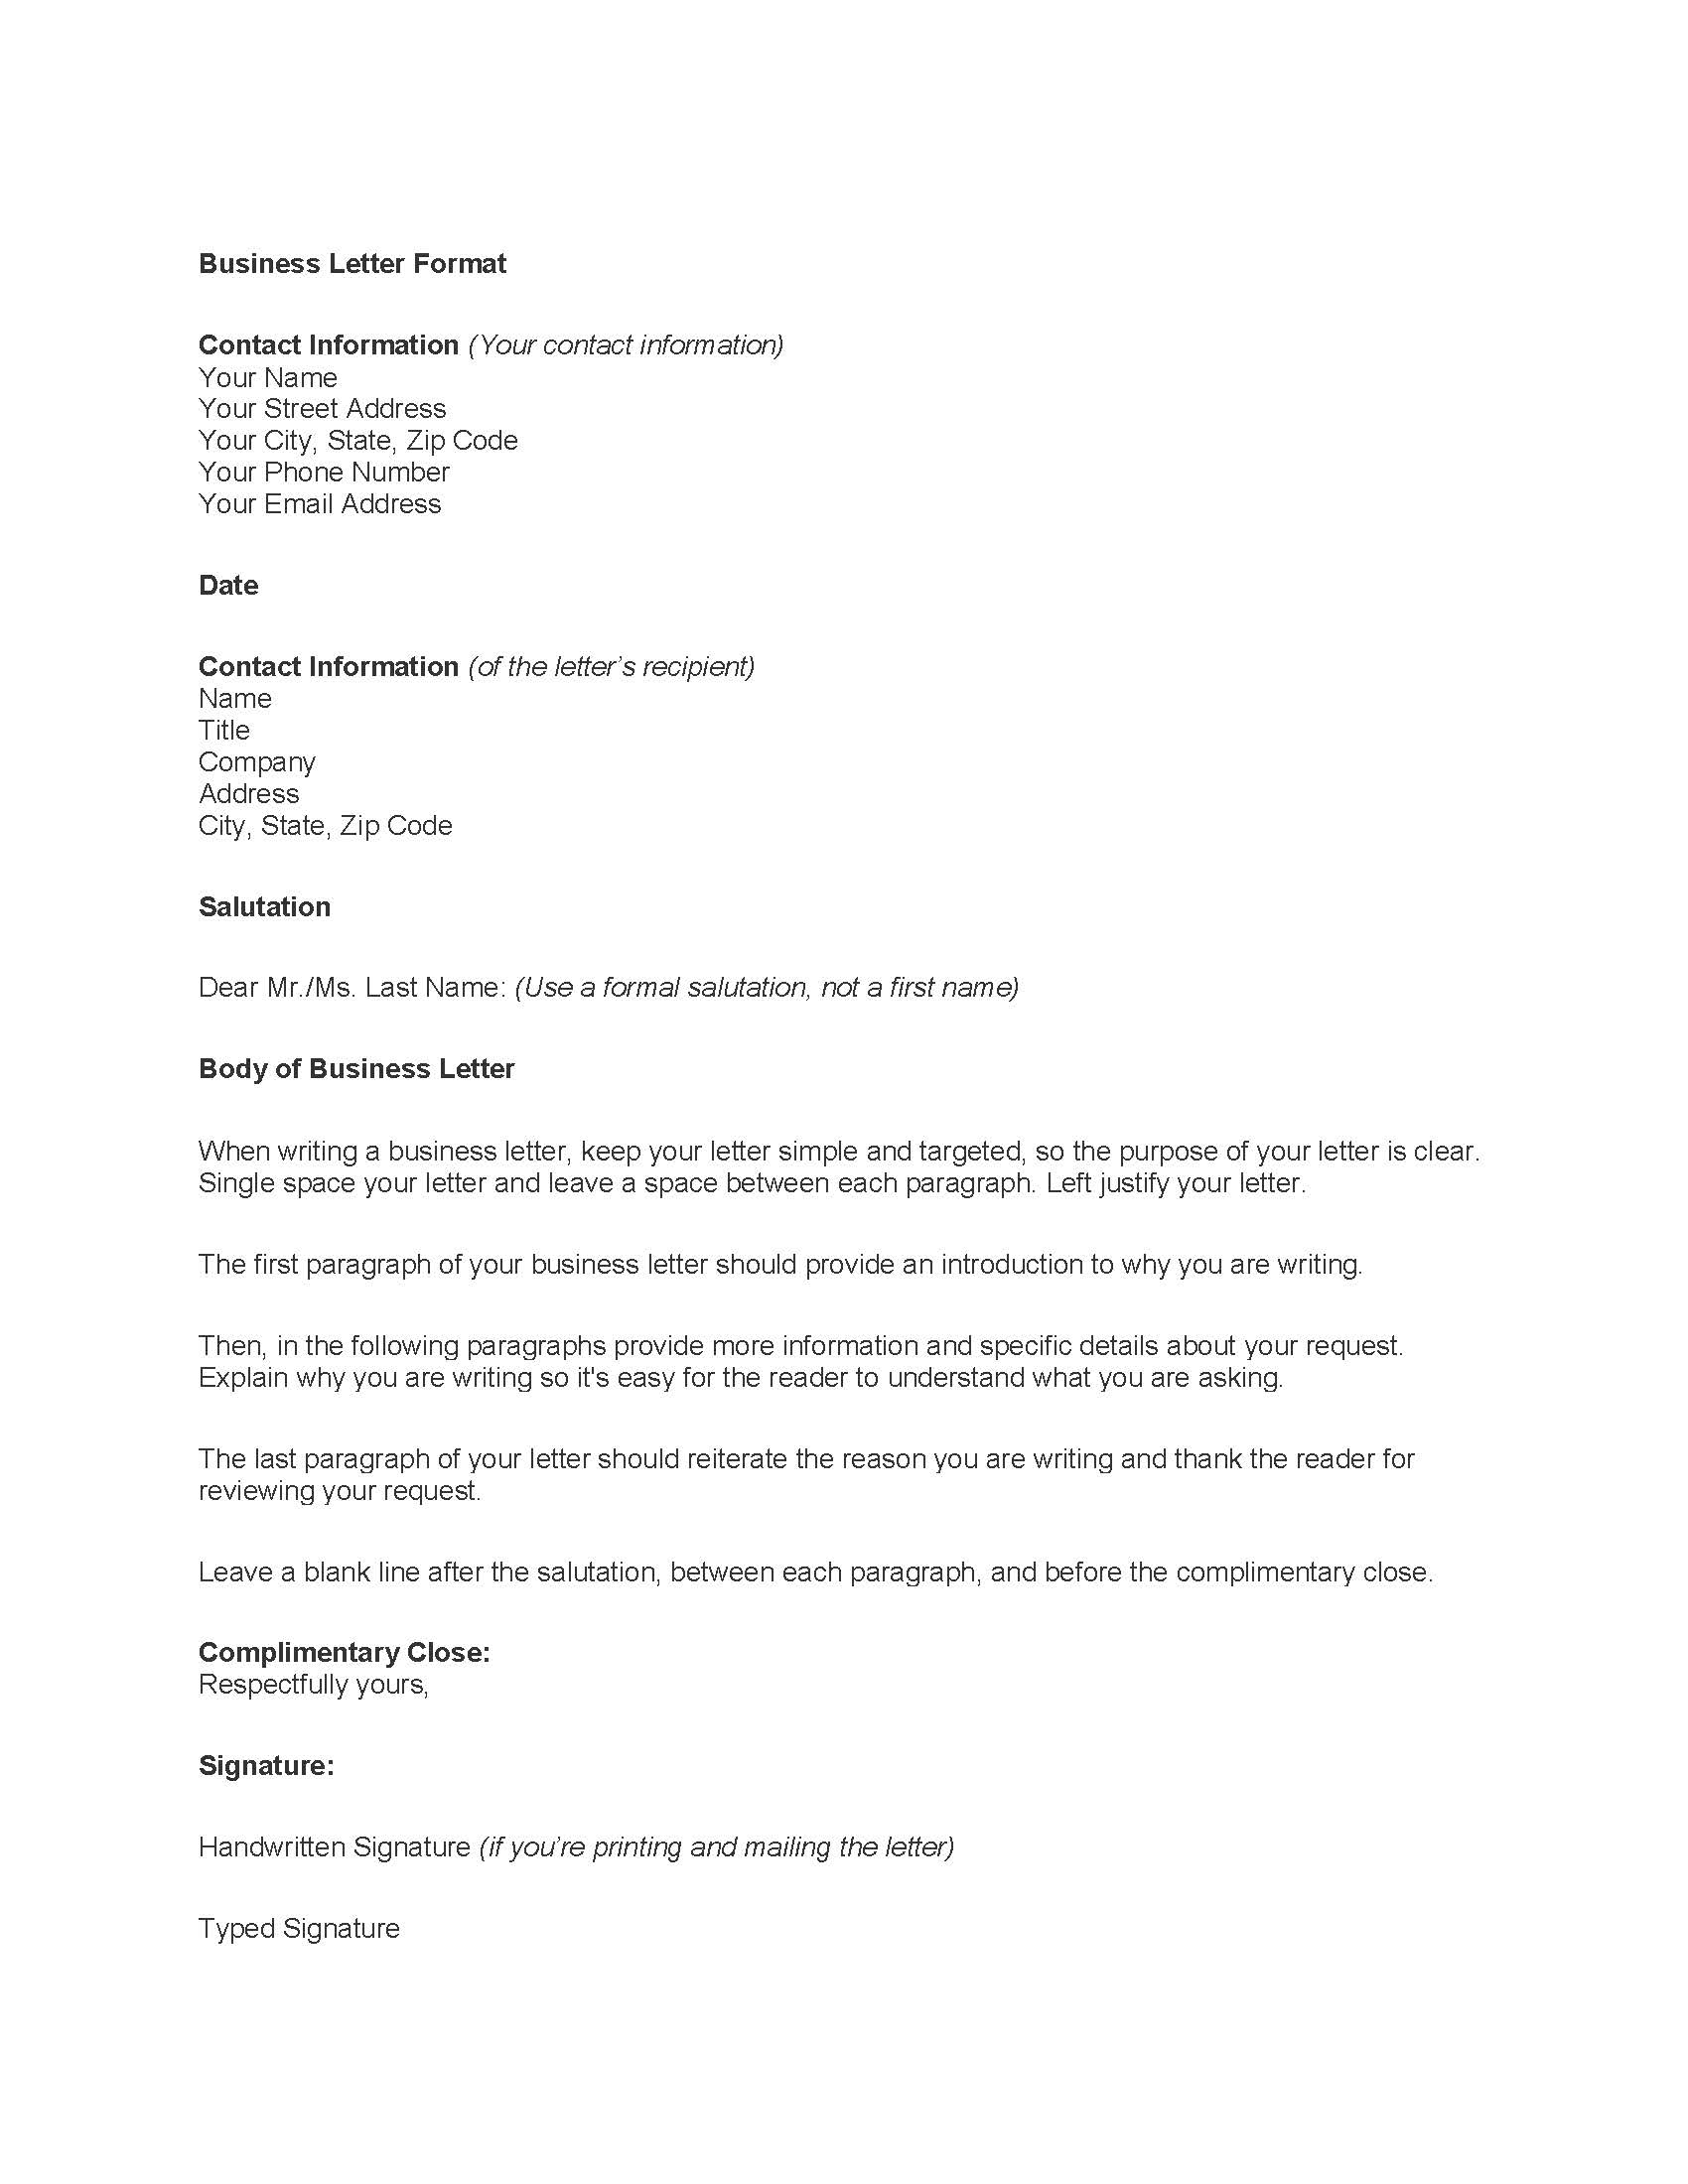 Cover letter examples nih - Green Essay - Professional Essay ...